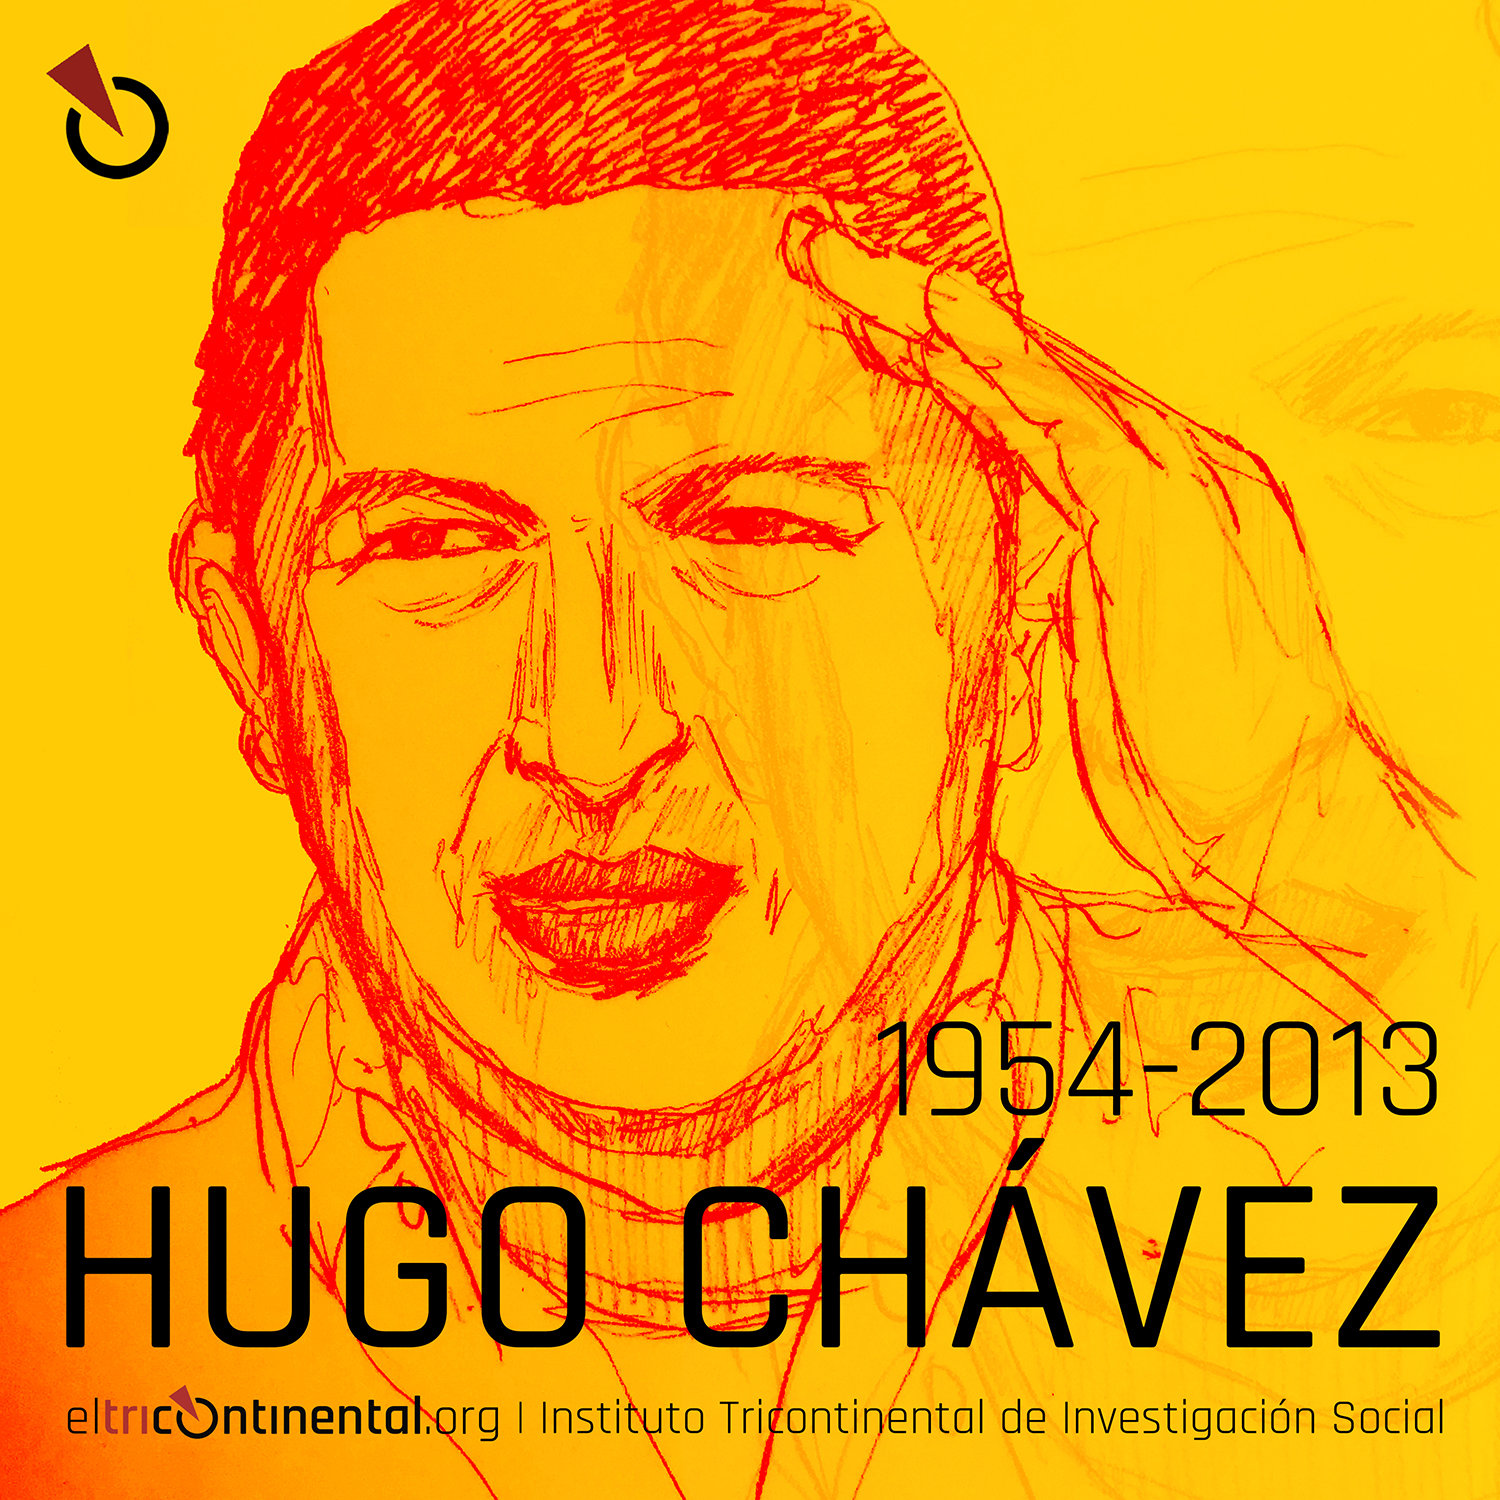 Pencil drawing of Hugo Chavez with his name and the dates 1954-2013 in the foreground.